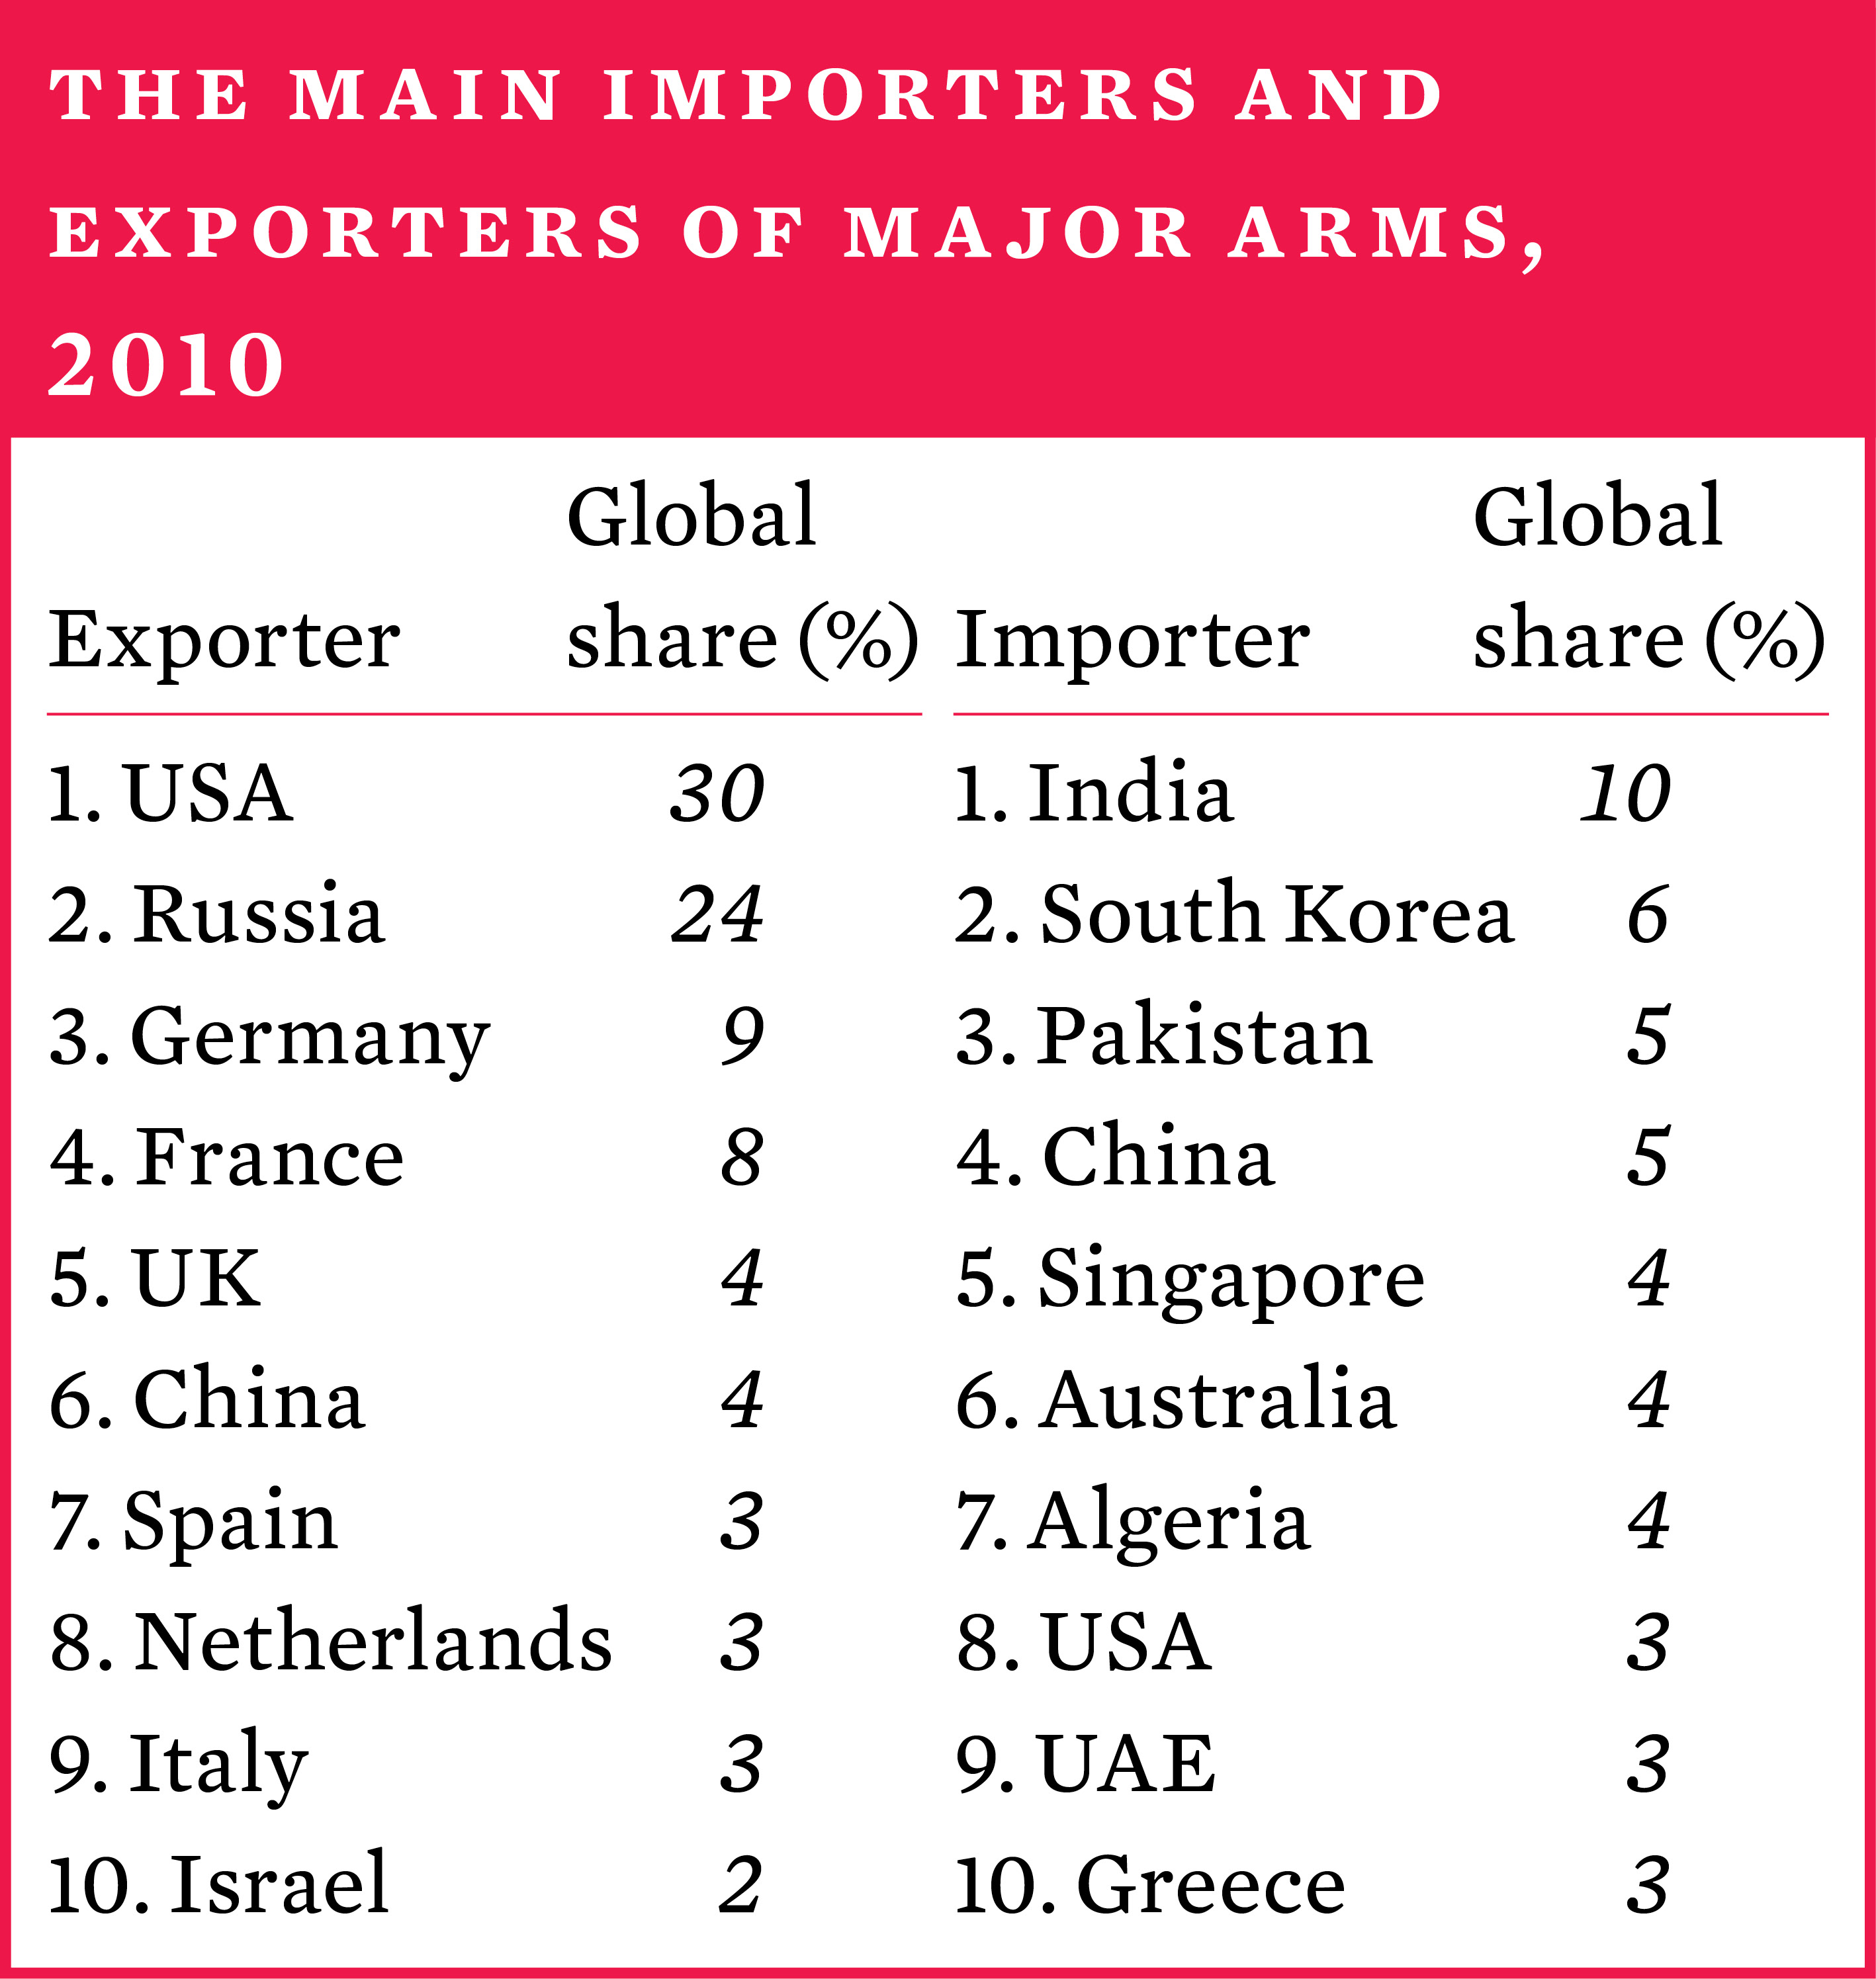 The main importers and exporters of major arms, 2010